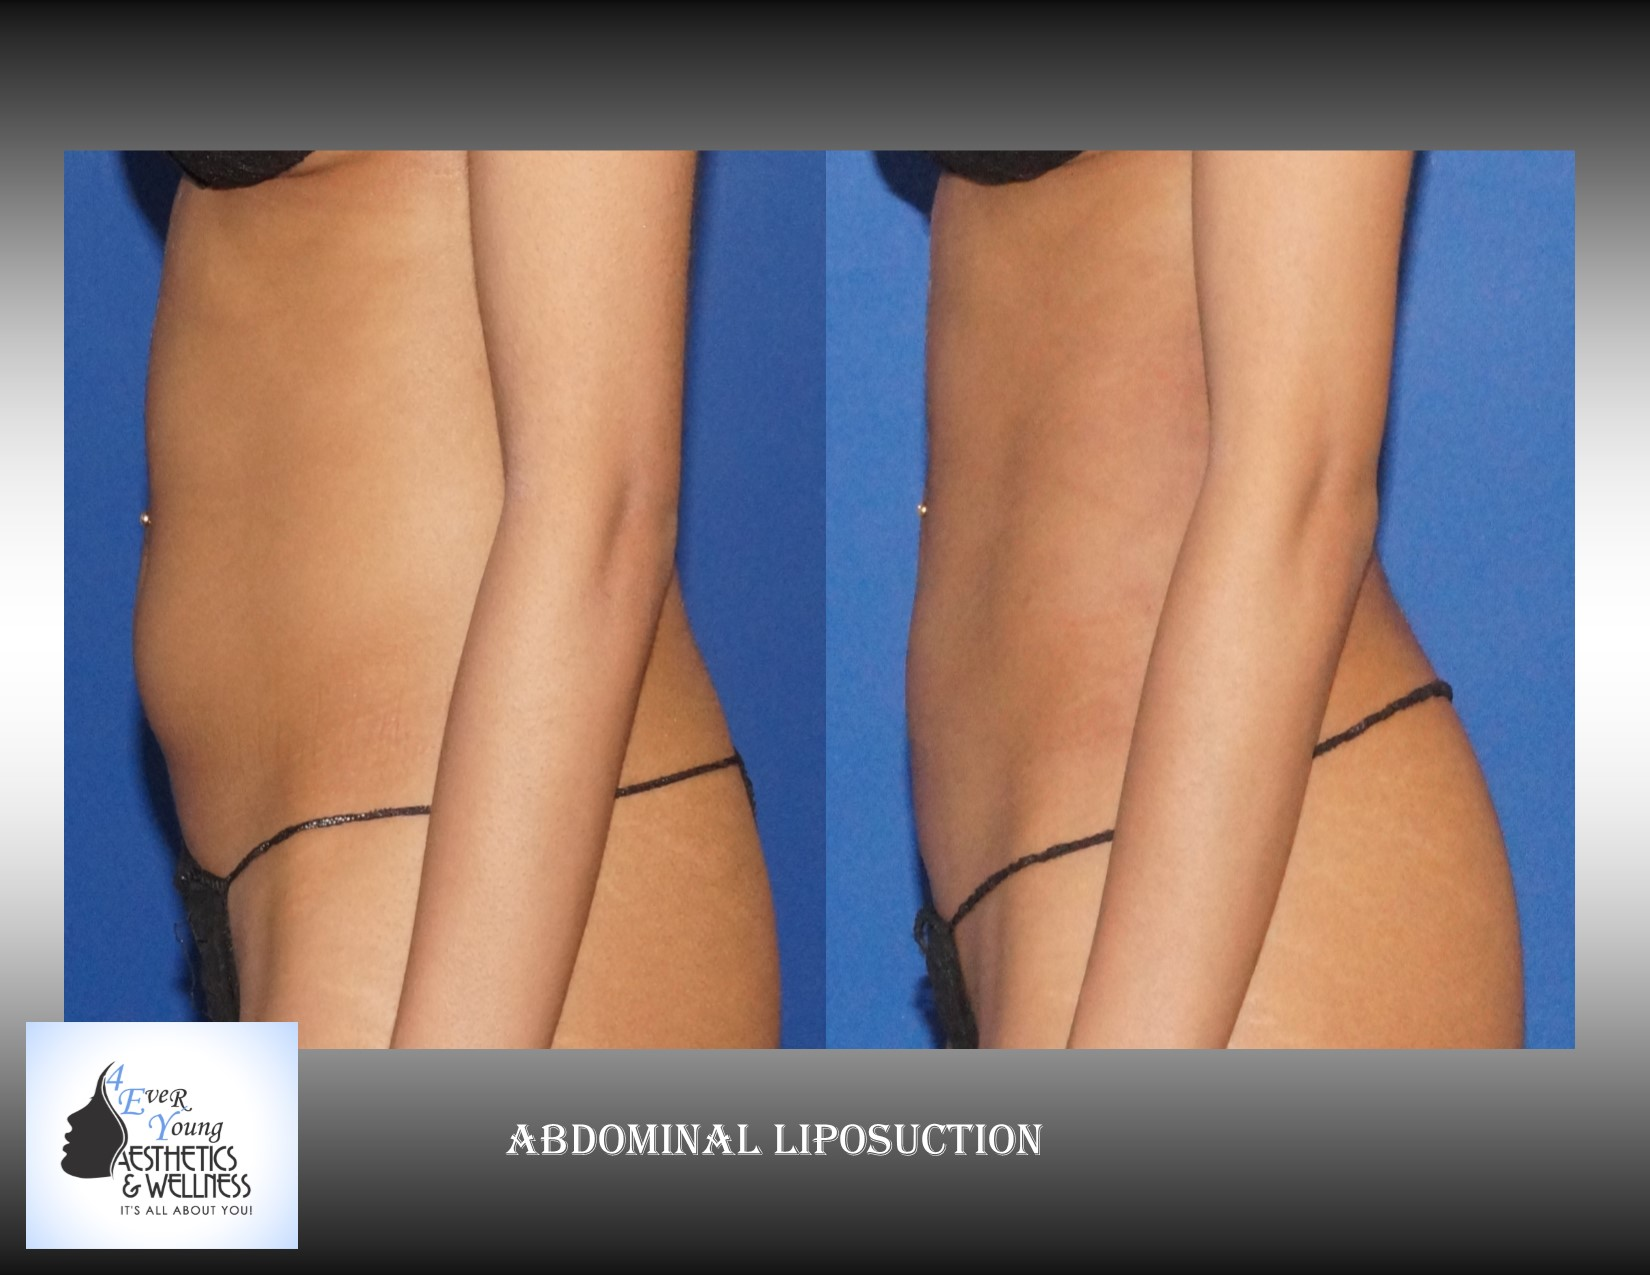 Liposuction is performed using tumescent anesthesia and traditional liposuction plastic surgery.  We are experts in laser liposuction (smartlipo), vaser liposuction and fat transfer, also known as fat grafting.  Our board-certified cosmetic surgeon is an expert at fat removal with liposuction which is an enhancement surgery and doesn't fall into the scope of practice of a board-certified plastic surgeon who is trained in reconstructive surgery.  Board-certified plastic surgeons with experience in liposuction are certainly qualified to perform the procedure but being trained strictly in plastic surgery is misleading.  We use abdominal liposuction, flank liposuction, back liposuction, arm liposuction, thigh liposuction and ankle liposuction to remove unsightly fat from problem areas with our tumescent liposuction procedures with or without sedation. If you desire we use autologous fat transfer (fat grafting) to use the fat obtained as the most natural dermal filler unlike synthetic fillers (Restylane, Juvederm, Sculptra, Radiesse, Belotero, Perlane) to improve fine lines and wrinkles of the face, hand rejuvenation with fat, fat transfer to breast, Brazilian Butt Lift (Butt Augmentation), liposculpture, lip augmentation with fat.  Fat transfer to the breast can be a great alternative to breast augmentation, saline implants, silicone implants, breast augmentation with mastopexy or just to improve volume in the upper pole of the breast.